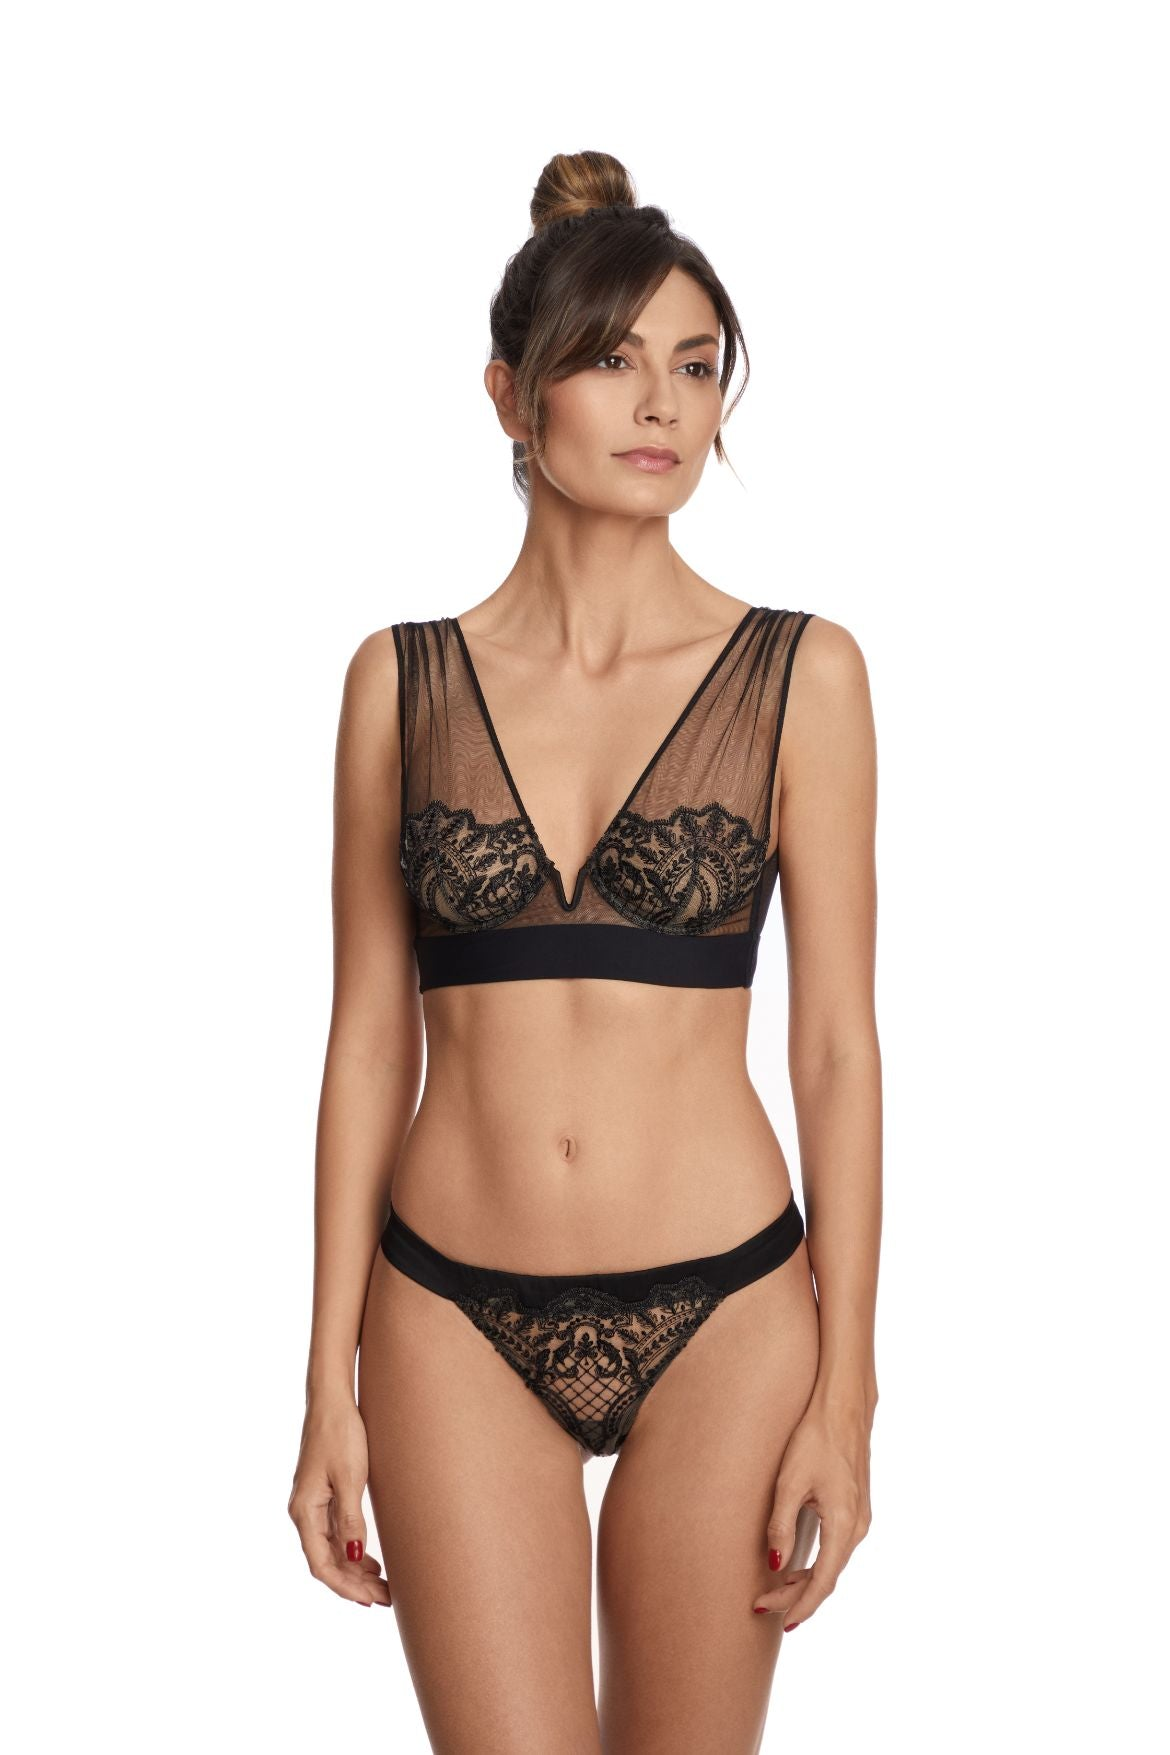 Questa Sera Underwired Bra in Black